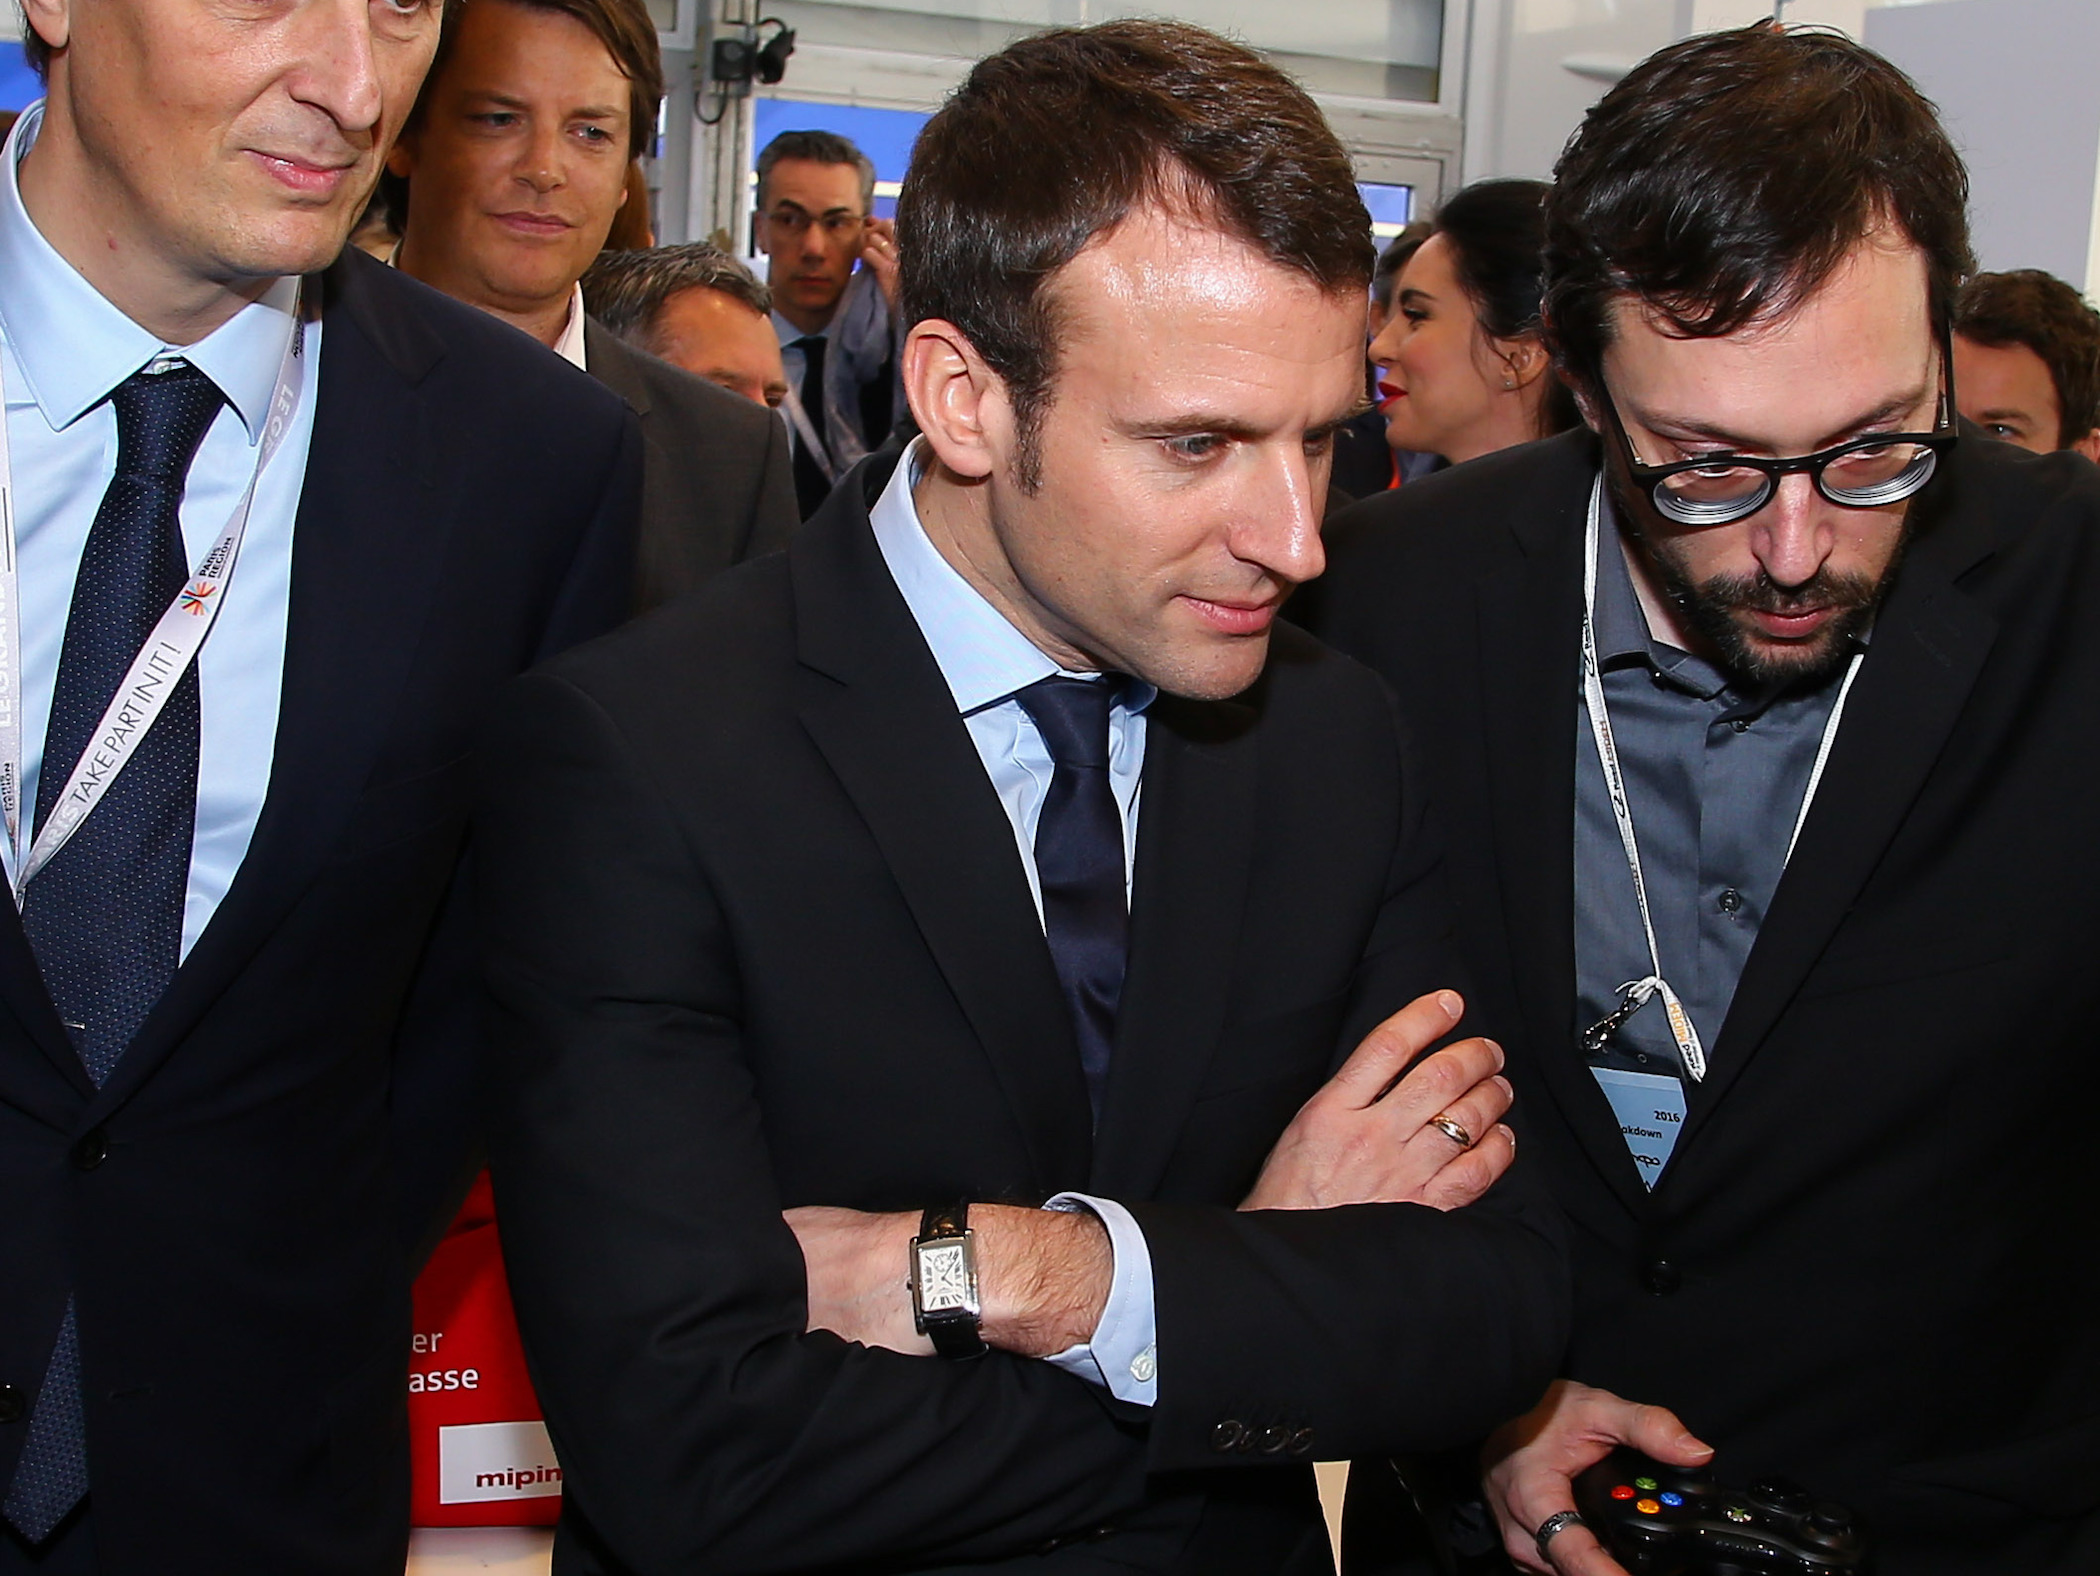 SPOTTED – What's On The Wrist Of Emmanuel Macron, The New French President?